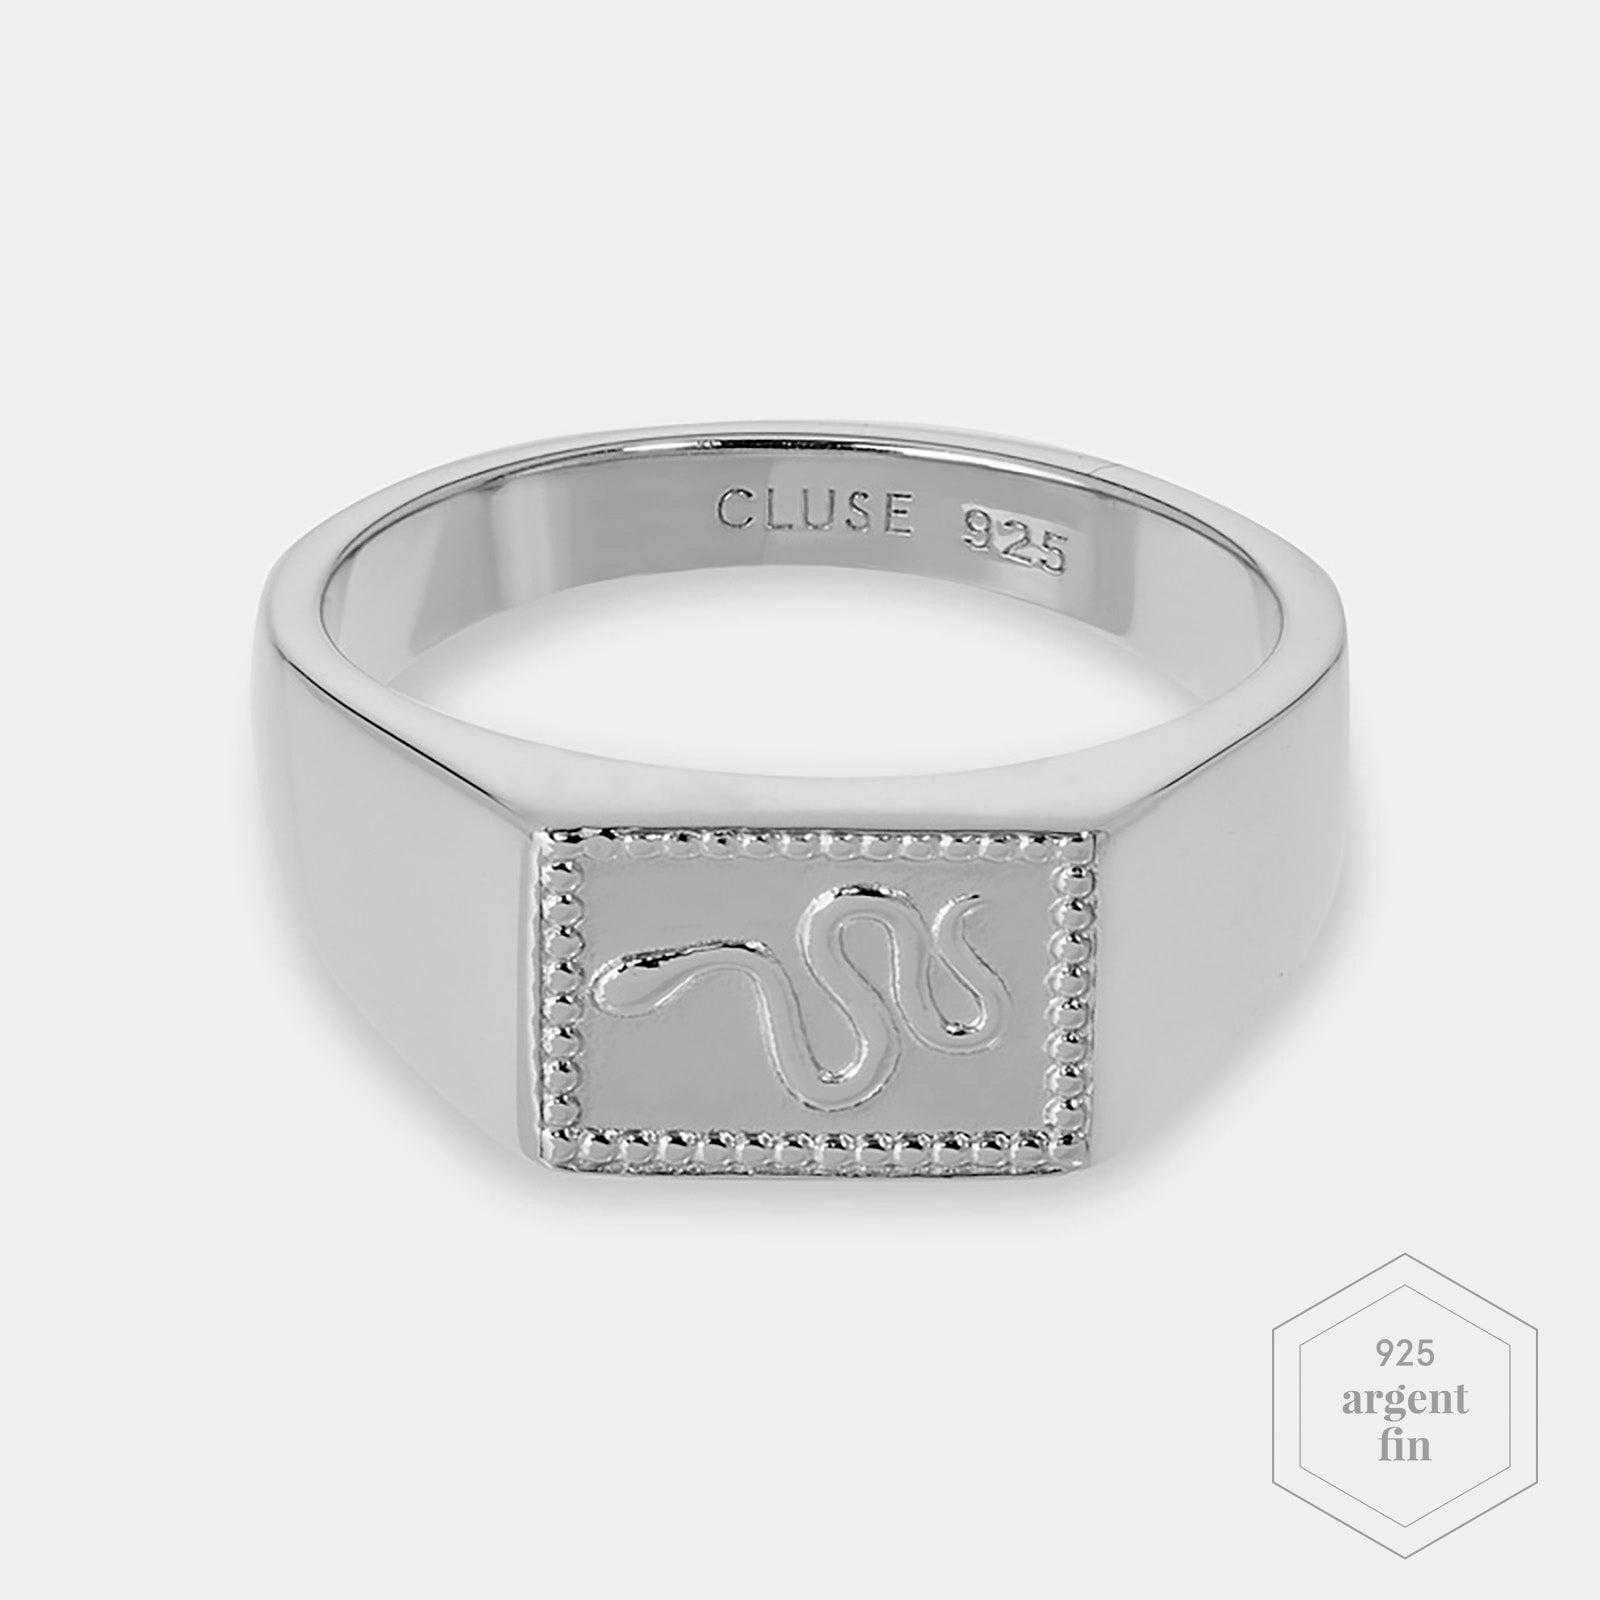 CLUSE Force Tropicale Silver Signet Rectangular Ring 52 CLJ42012-52 - Bague taille 52